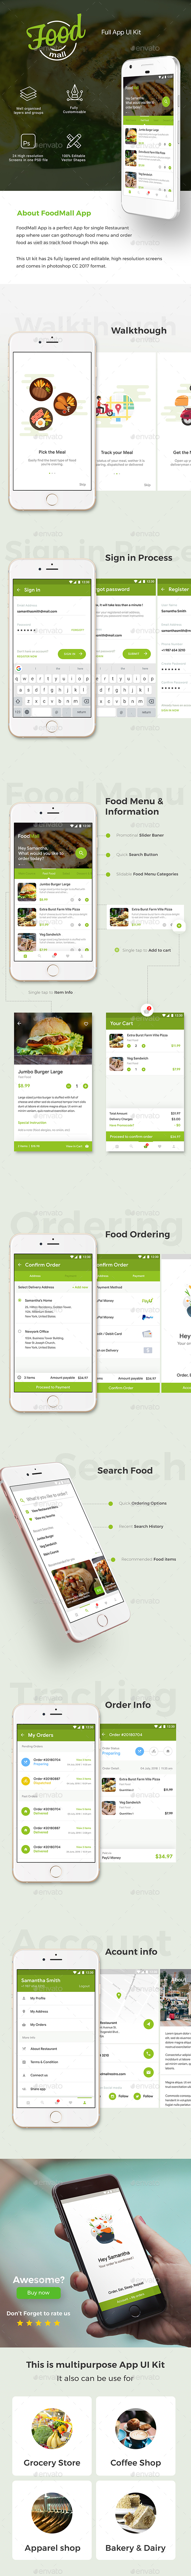 Restaurant Food Ordering App UI kit | FoodMall - User Interfaces Web Elements